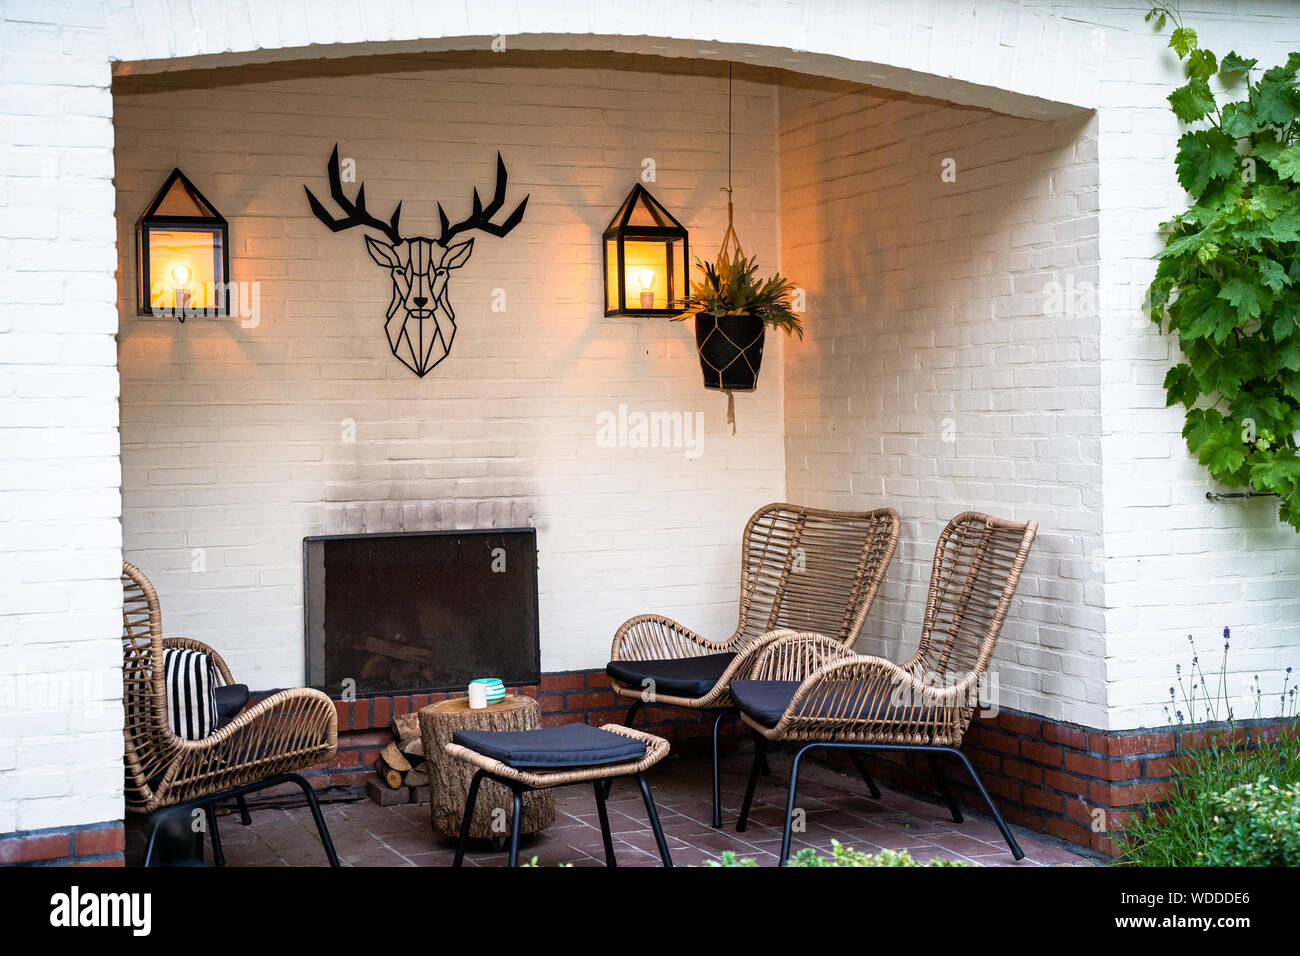 outdoor lounge set in a green garden in the alcove of a white painted building Stock Photo